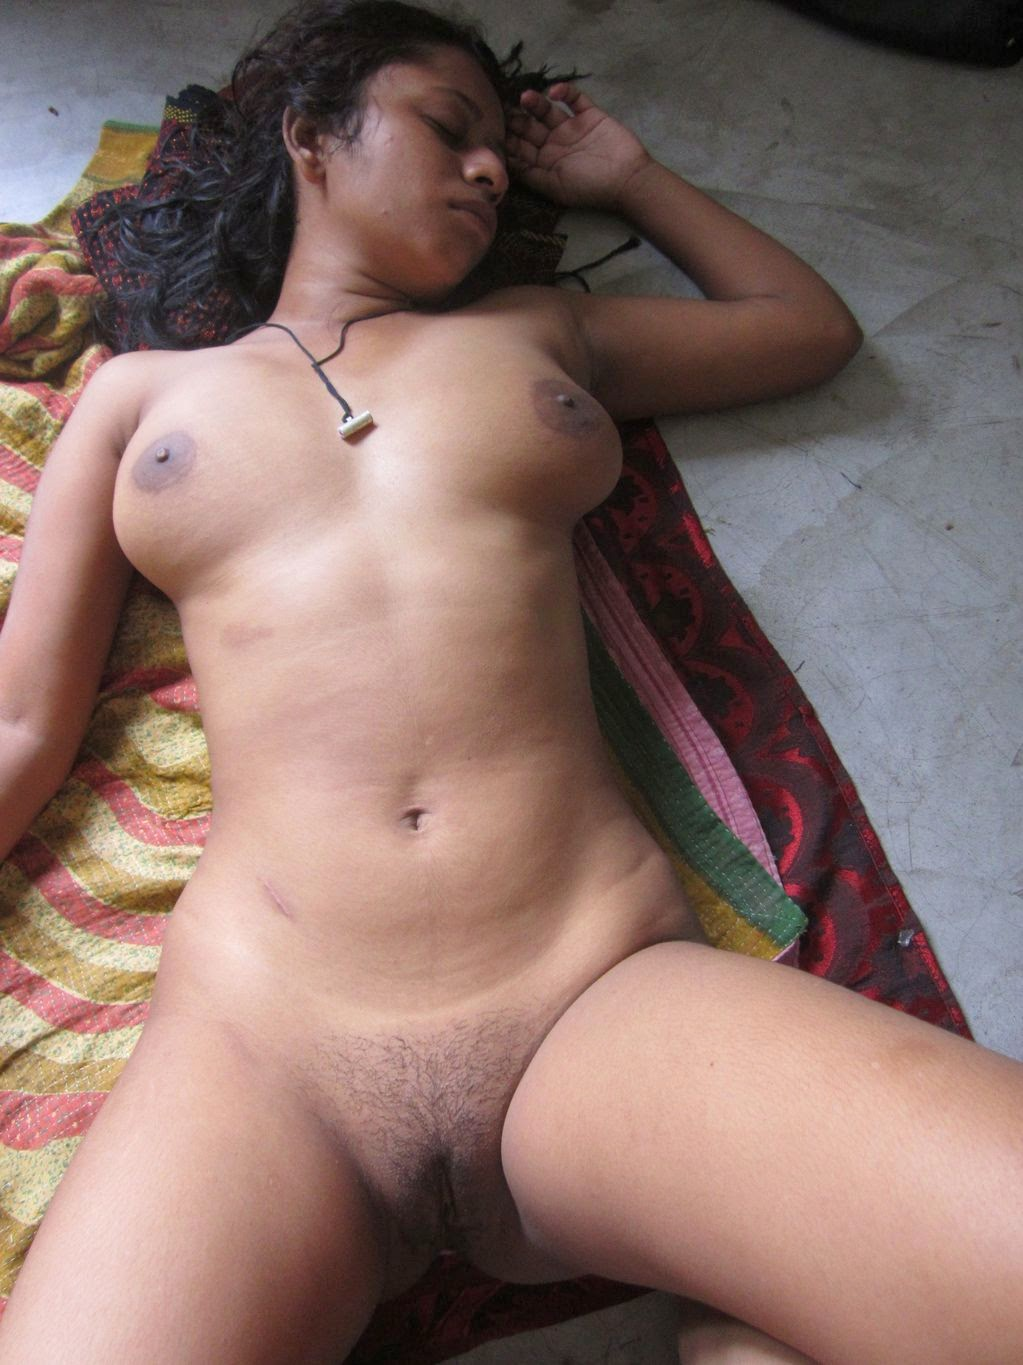 For the Indian collage girls nude big boobs absurd